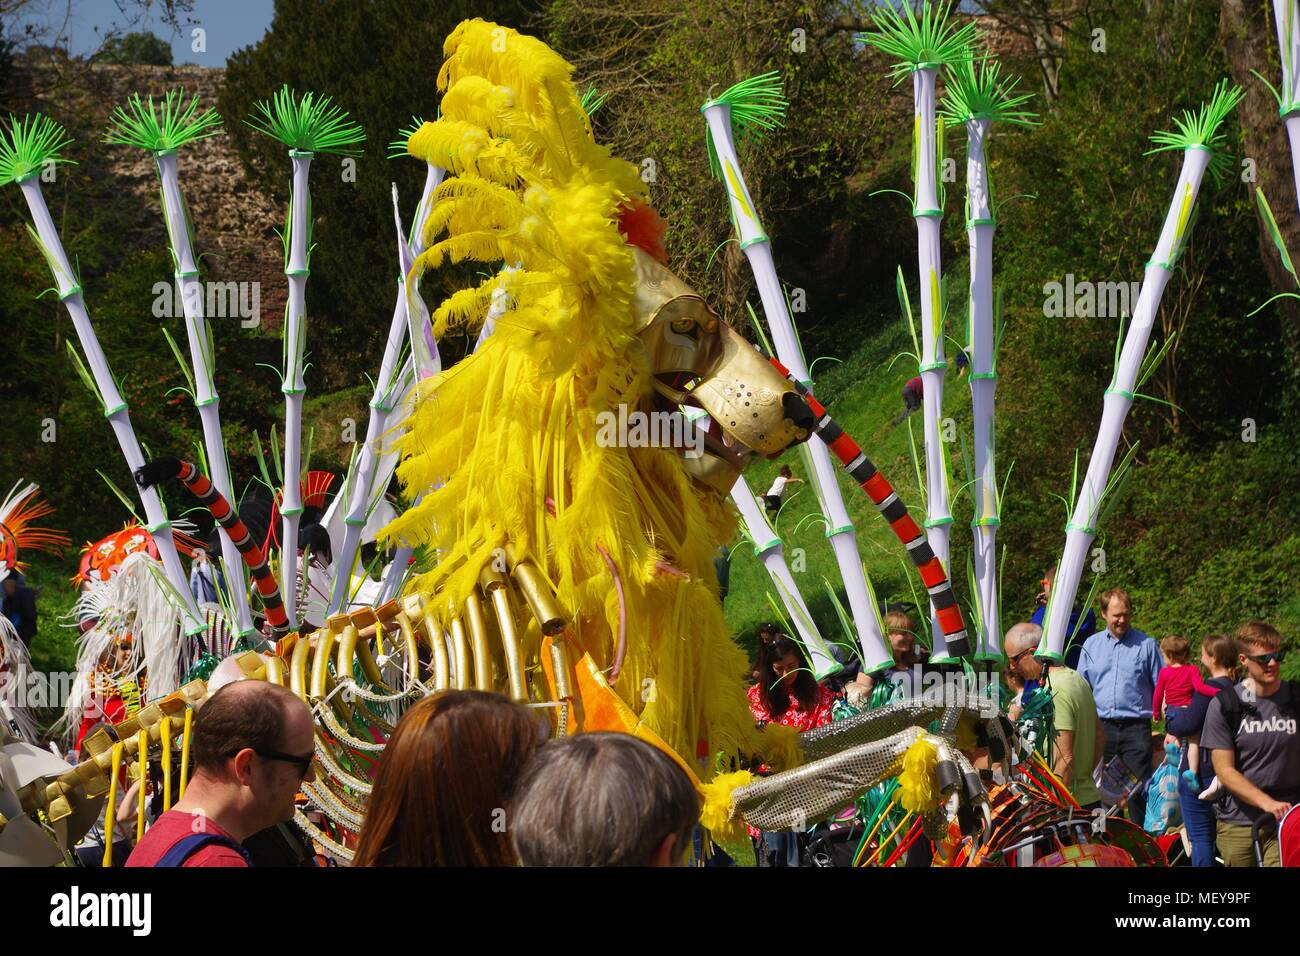 Golden Kinetic Lion Puppet at ramm's Carnival of the Animals Anniversary. Rougemont Gardens, Exeter, Devon, UK. April, 2018. - Stock Image